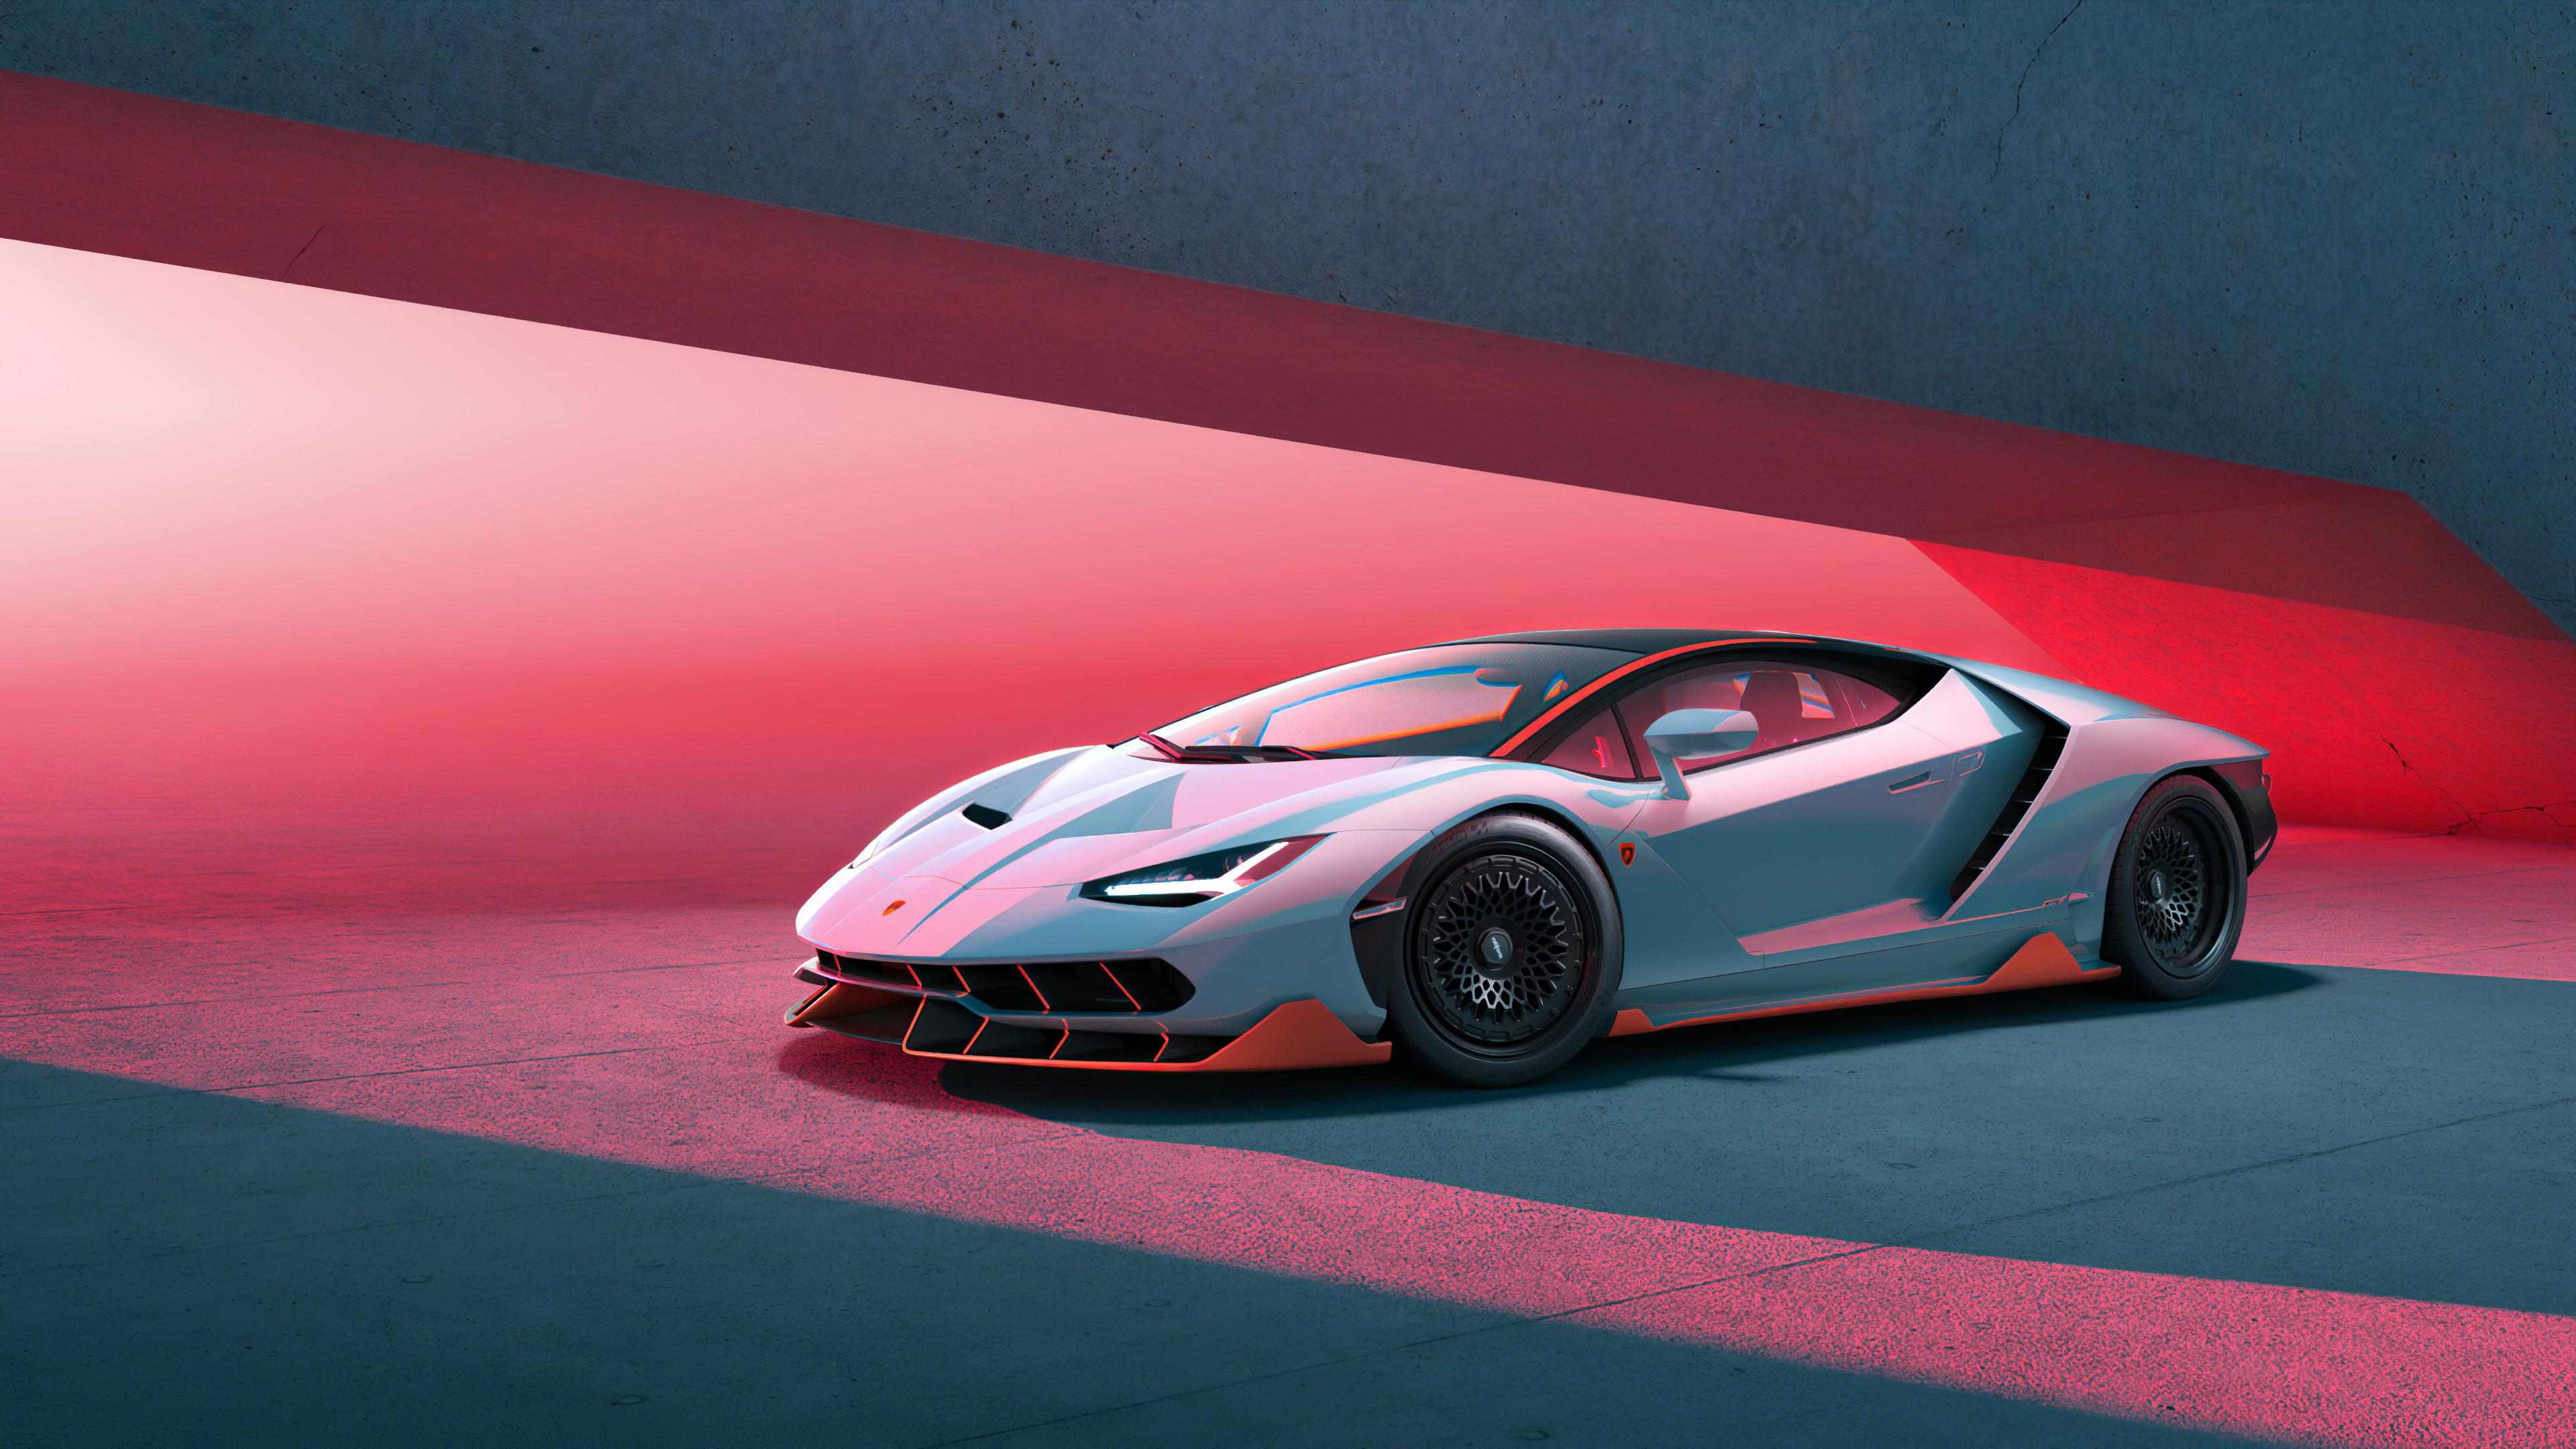 Lamborghini 4k Wallpapers For Your Desktop Or Mobile Screen Free And Easy To Download